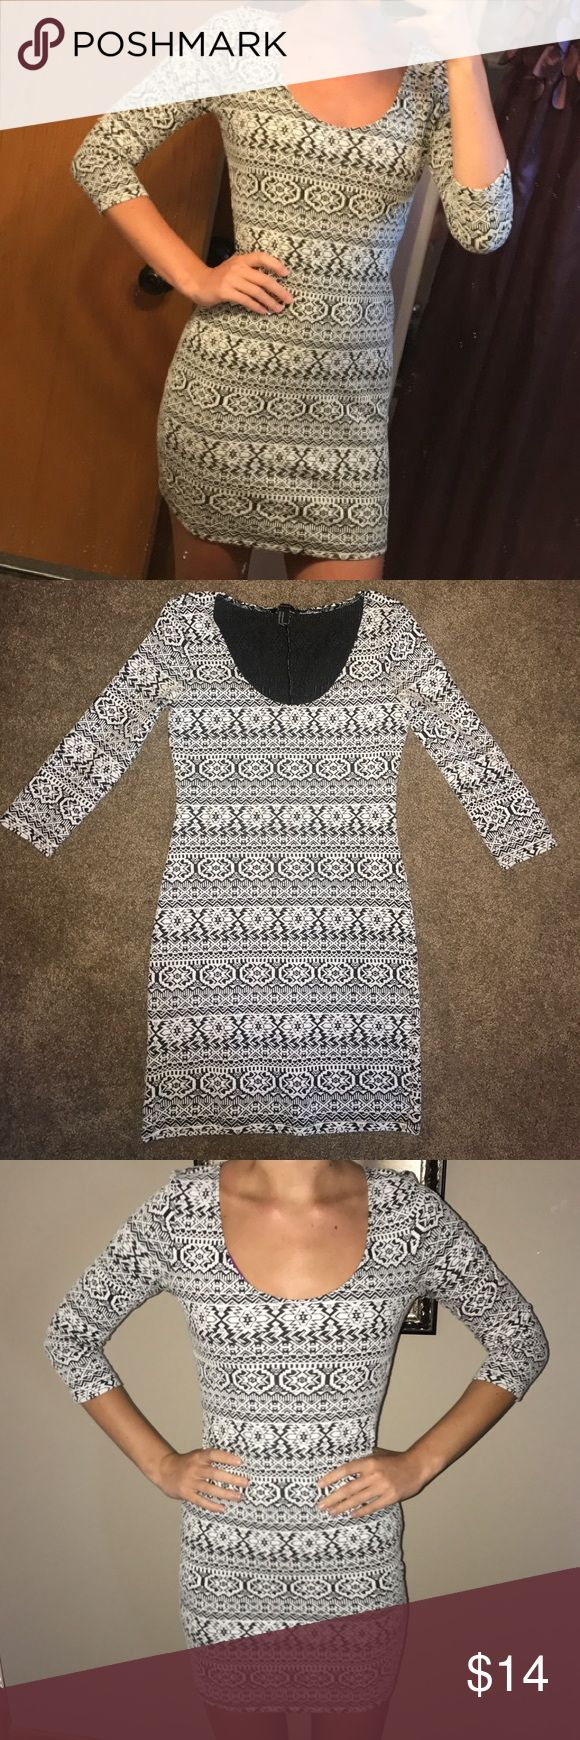 Forever 21 Aztec tight fitting dress 3/4 length sleeves. Stretchy material. Worn only once, in great condition. 54% polyester, 43% cotton, 3% spandex. Forever 21 Dresses Mini